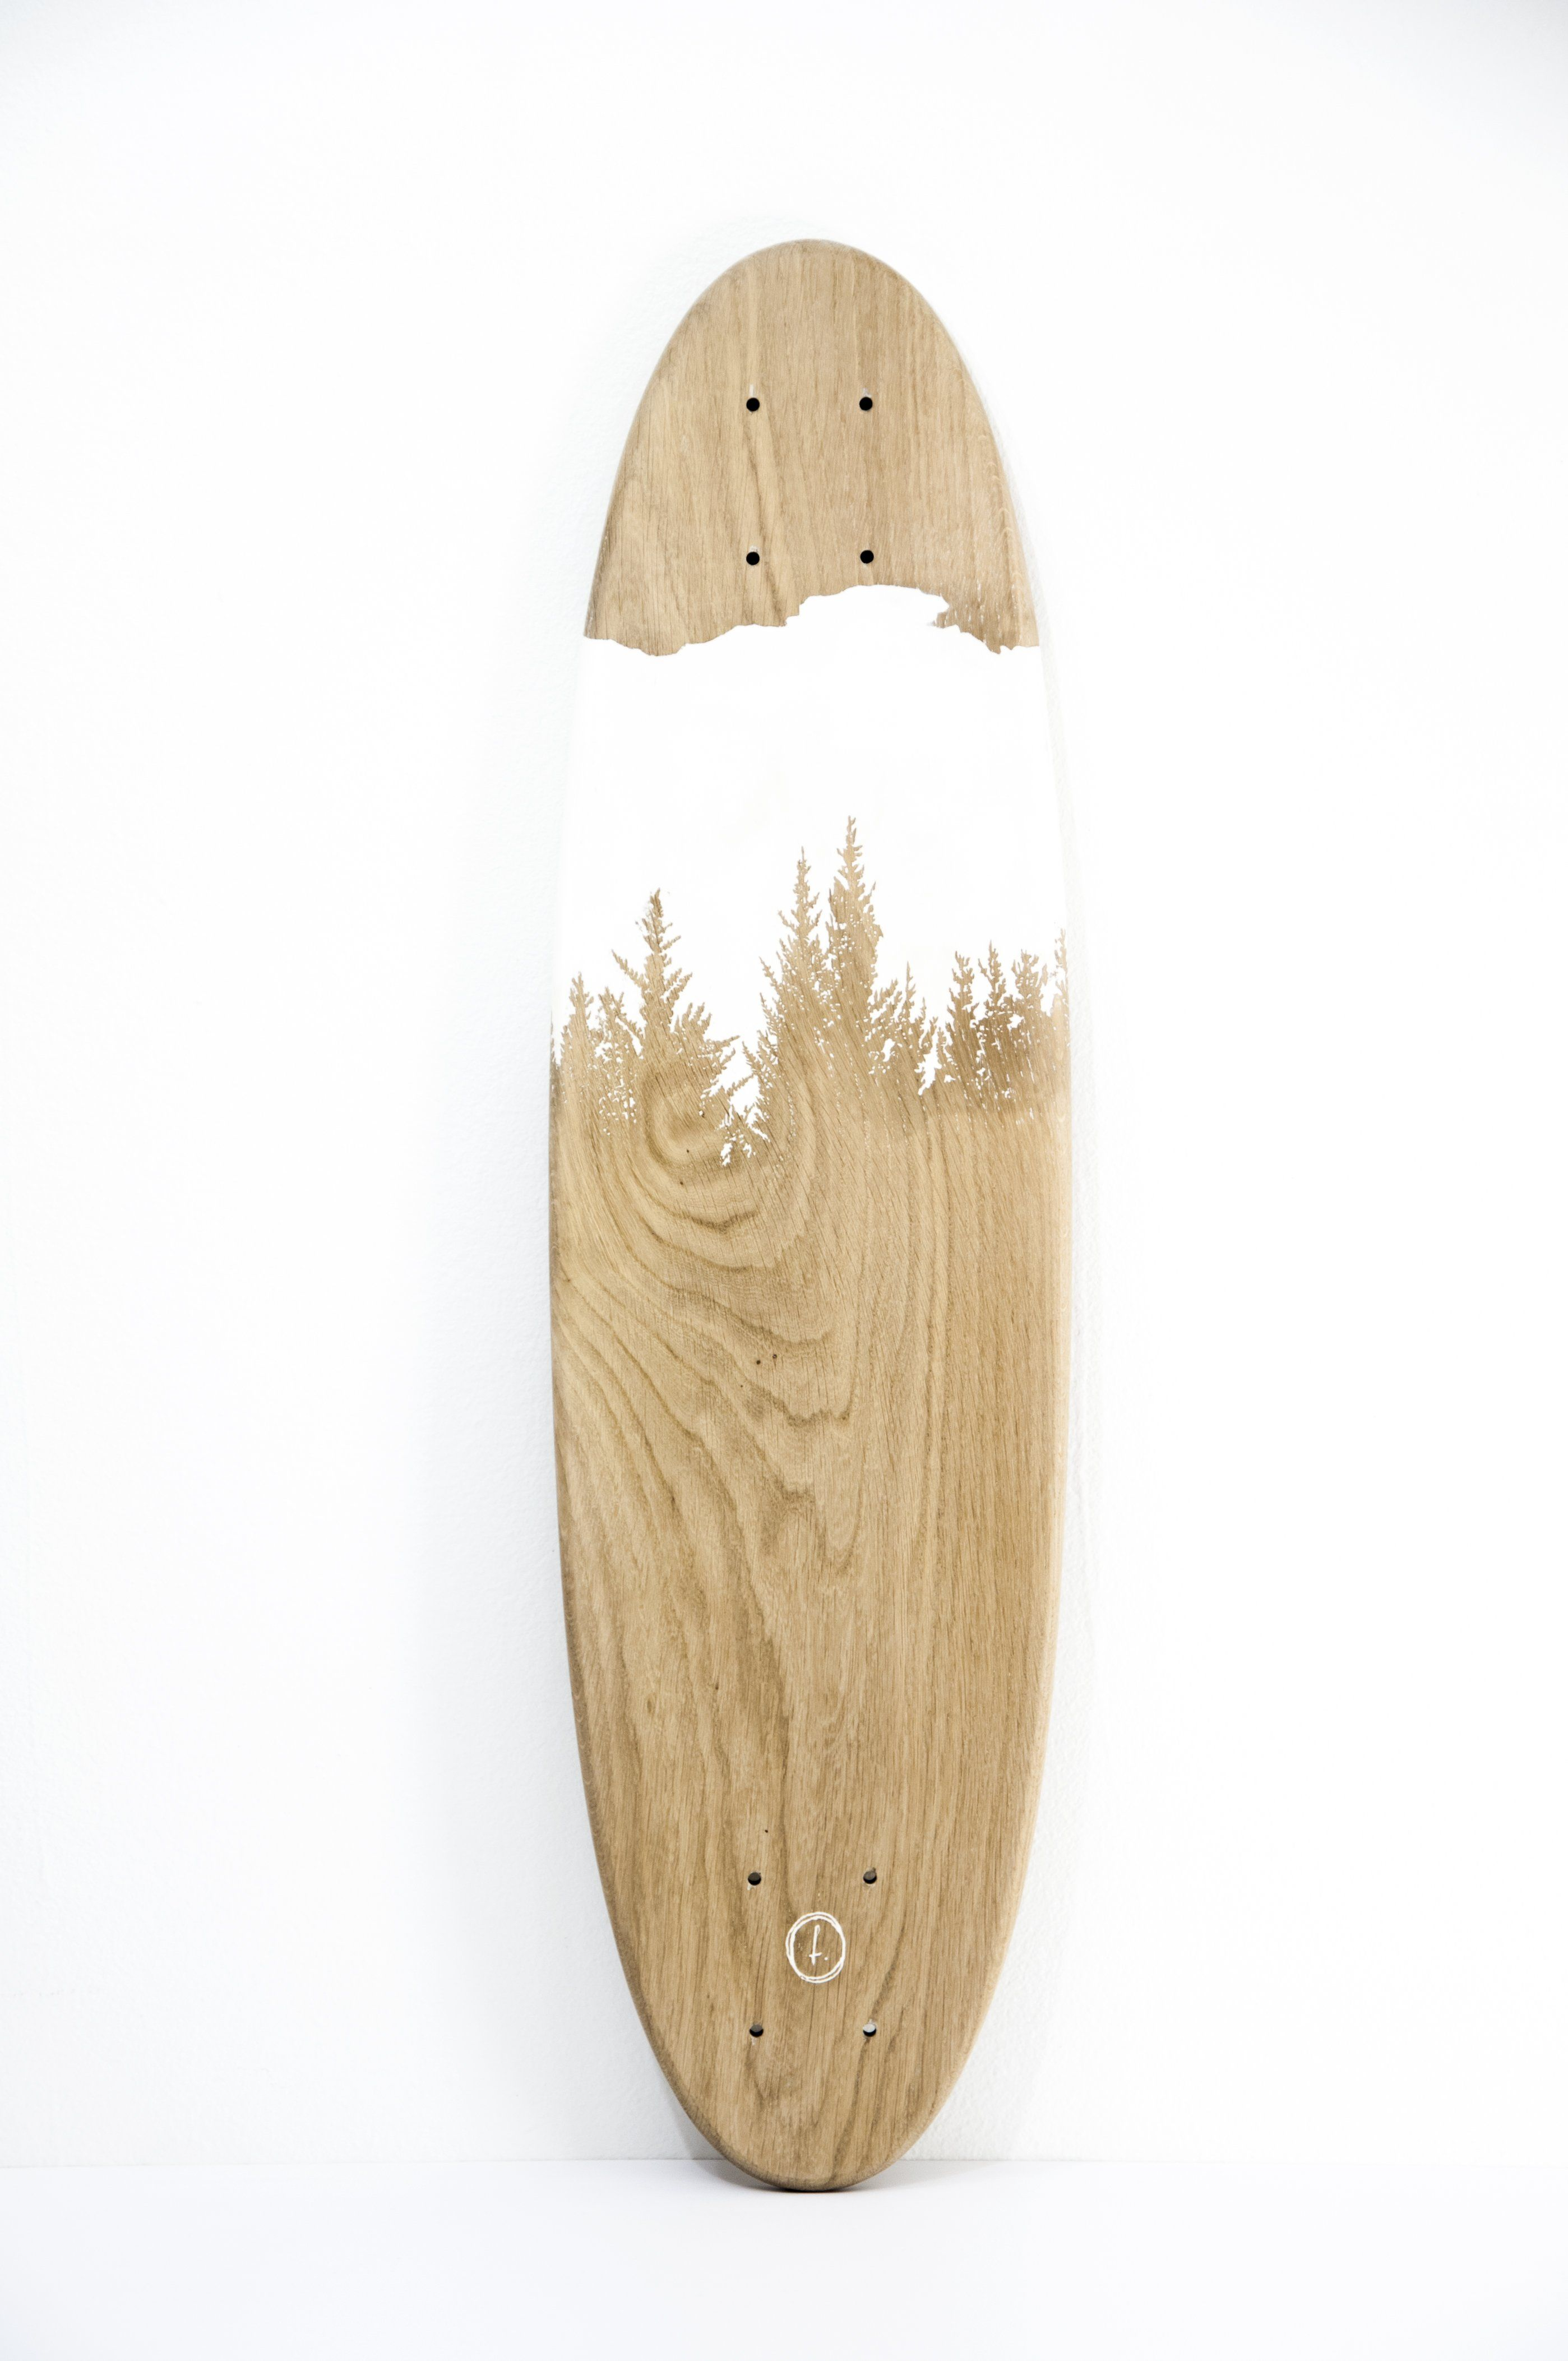 One of a kind, classic style skateboard deck / cruiser board ...